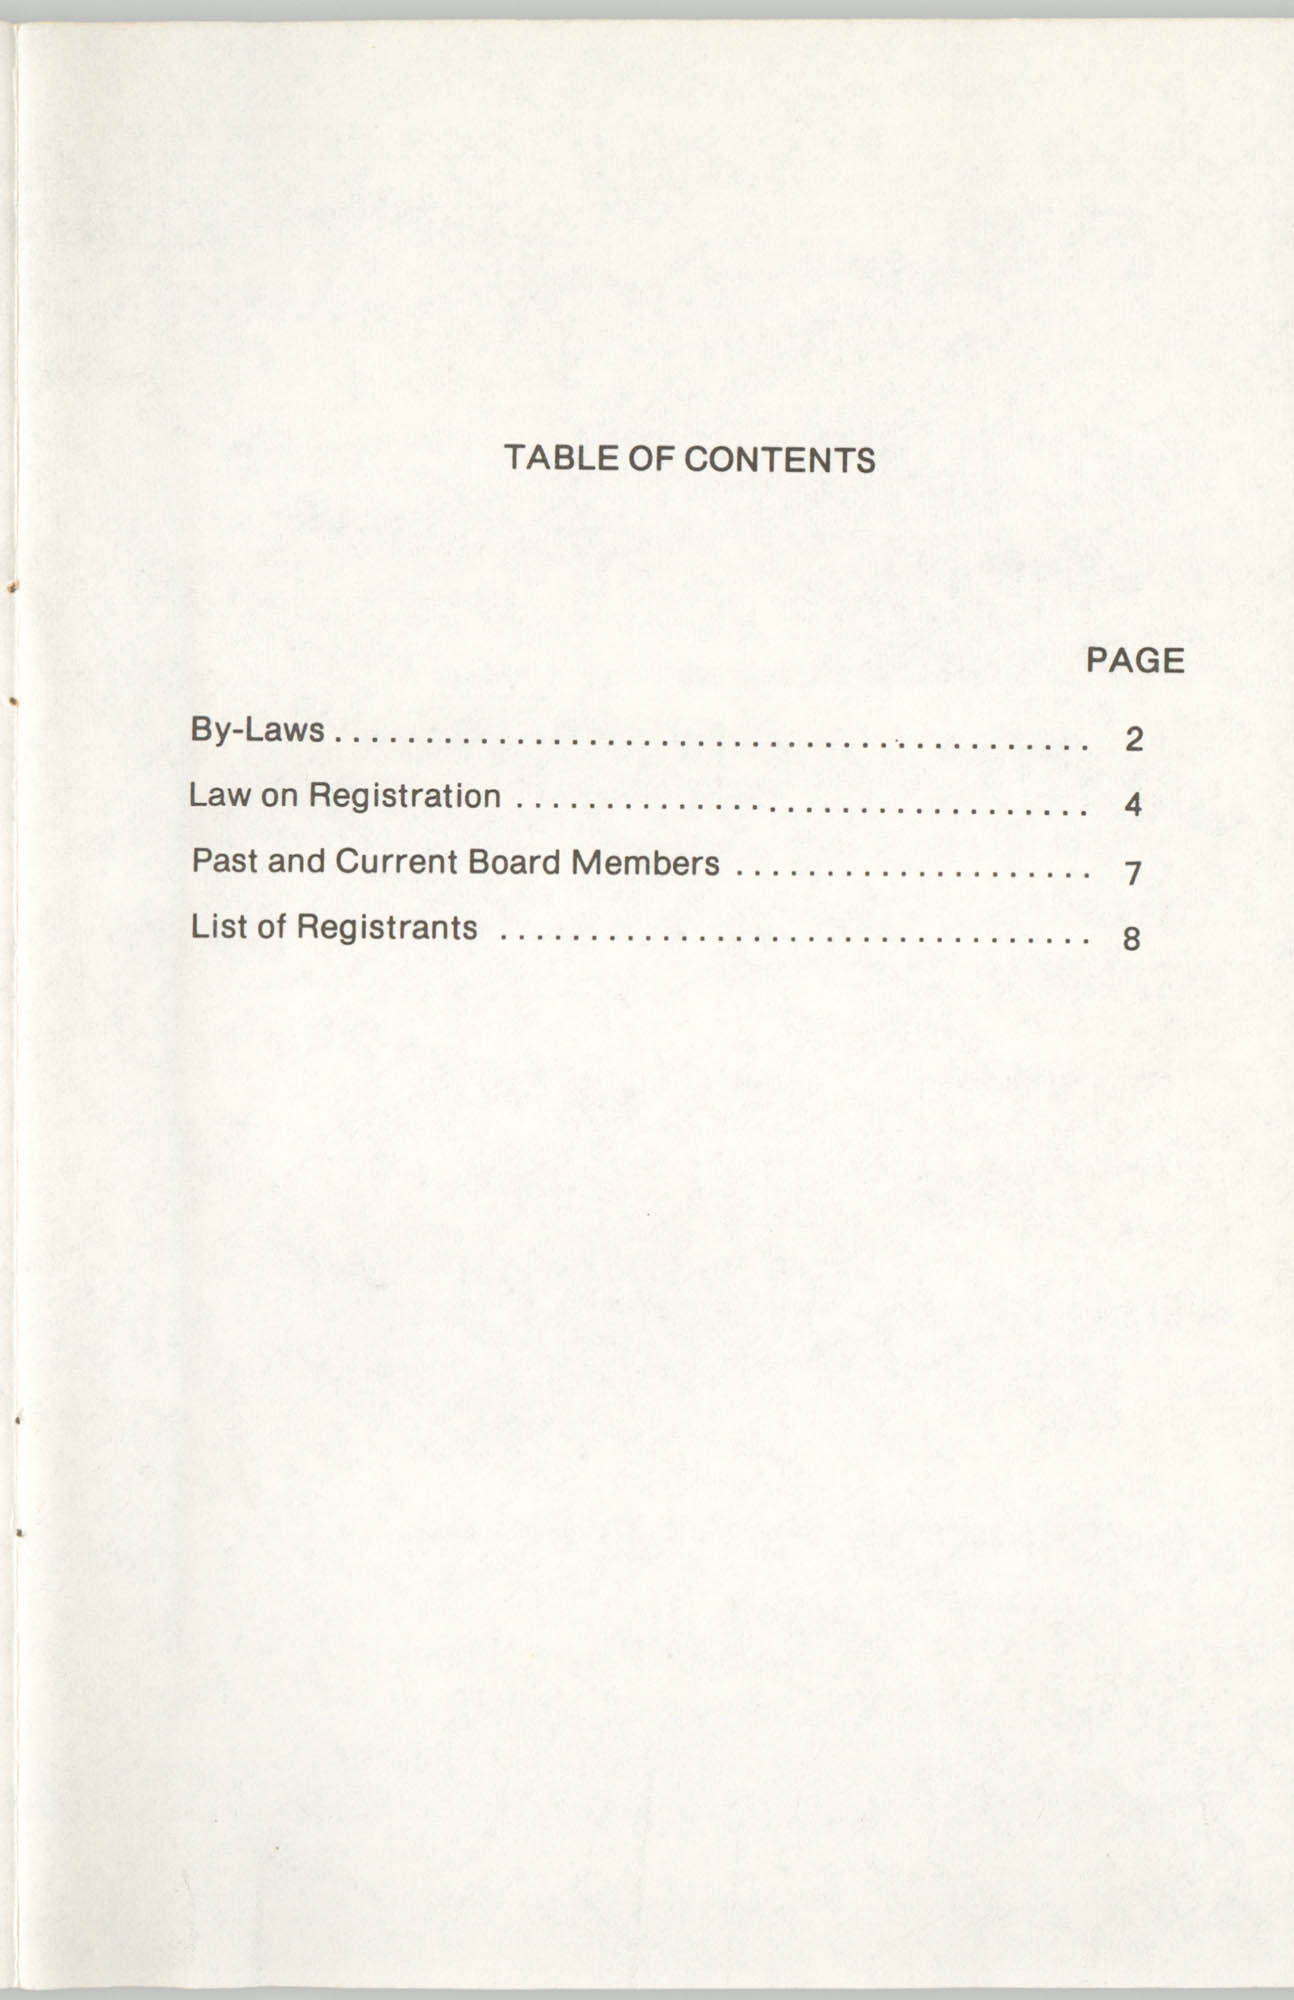 State of South Carolina Directory of Registered Social Workers, 1977, Table of Contents